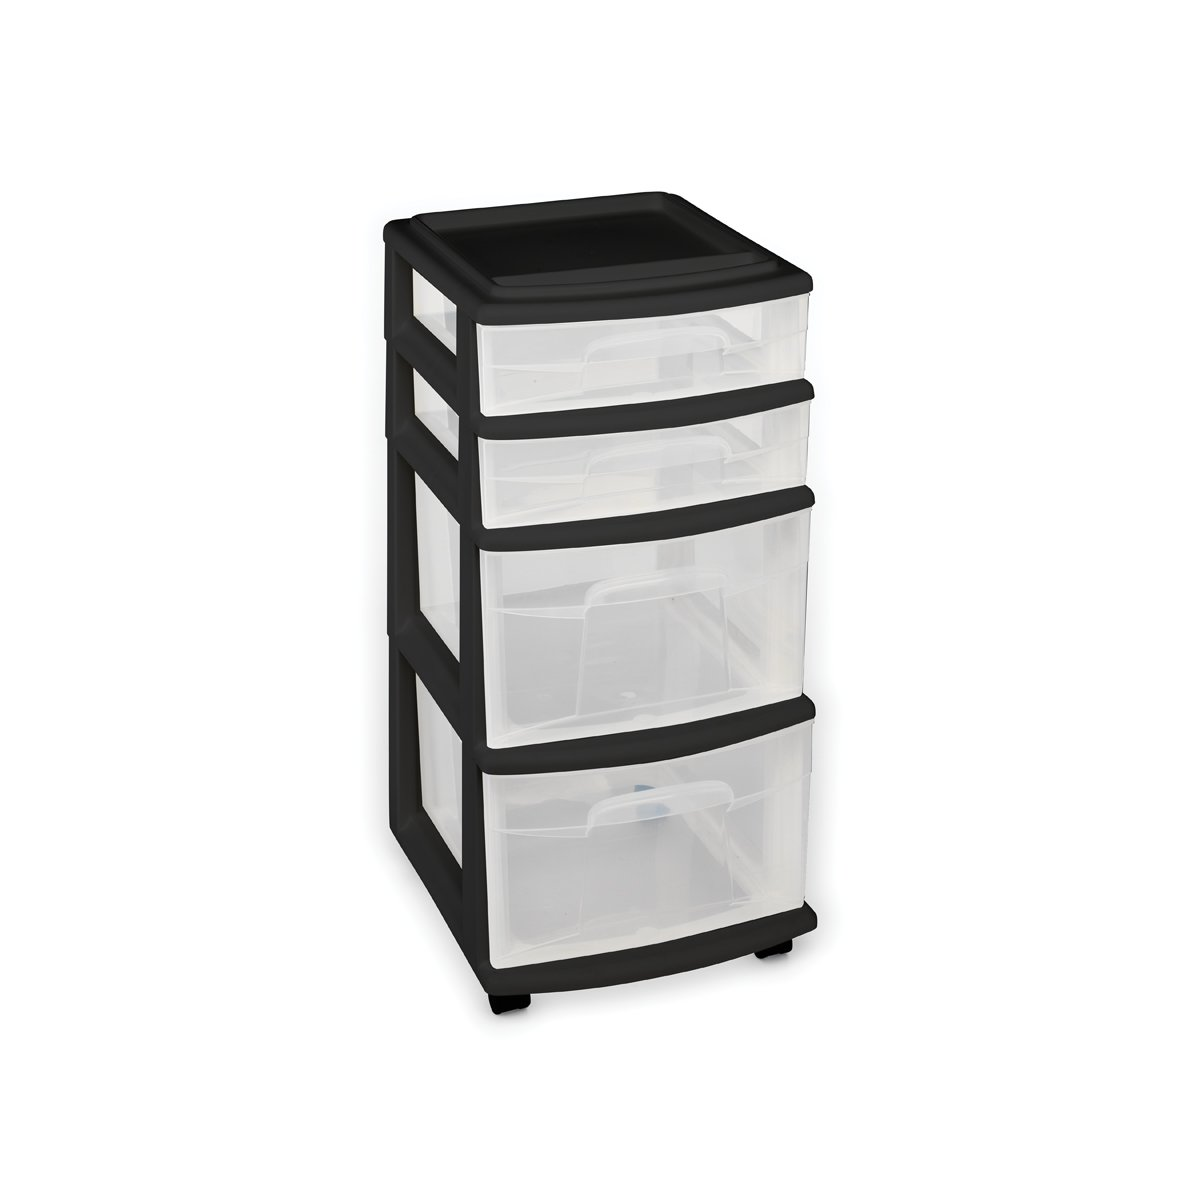 Homz Plastic 4 Drawer Medium Cart, Black Frame with Clear Drawers, Casters Included, Set of 1 by Homz